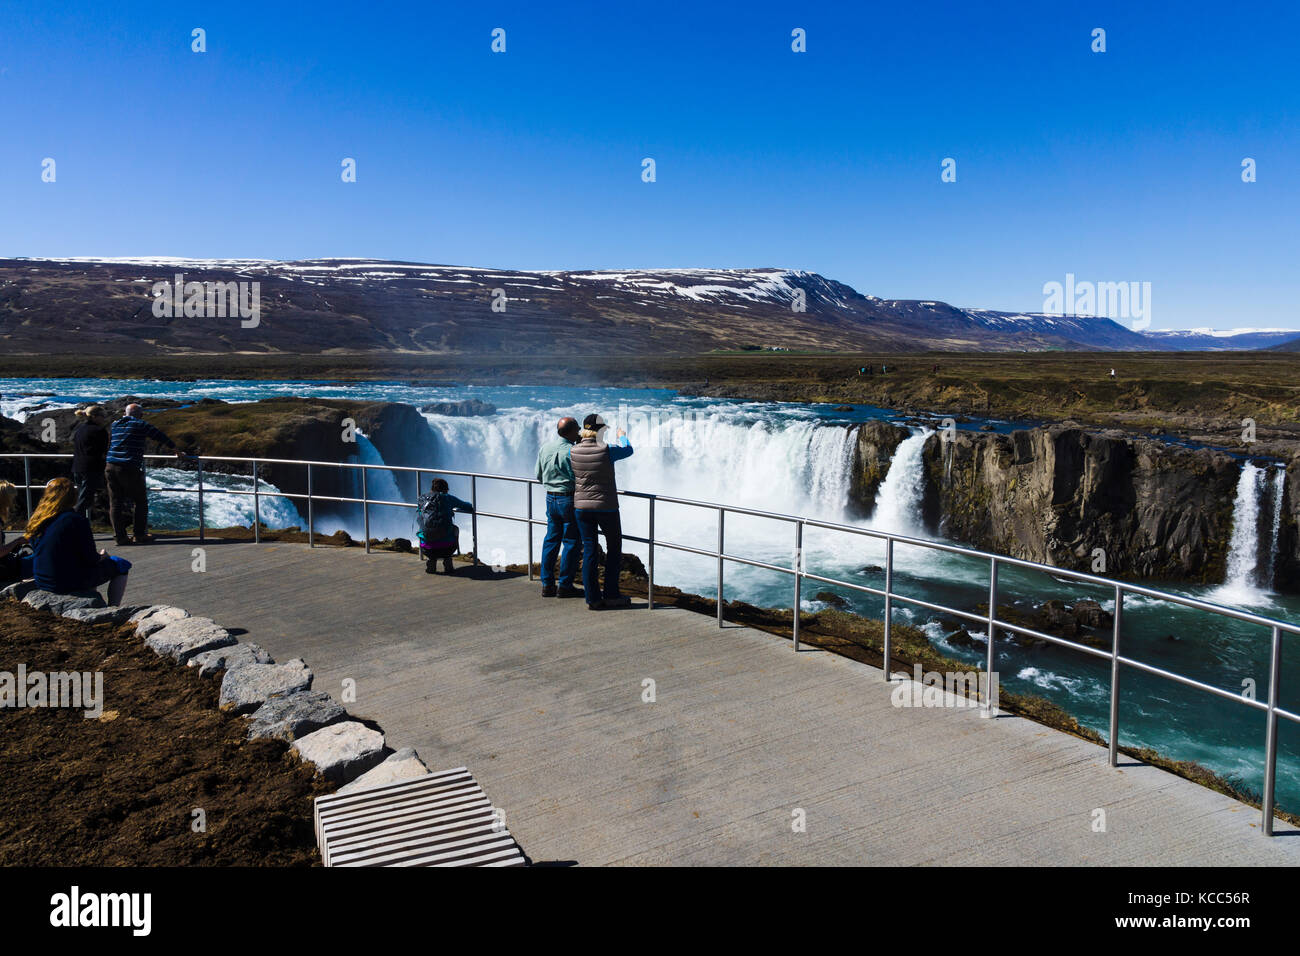 Tourists at viewpoint for Goðafoss waterfall, Iceland - Stock Image